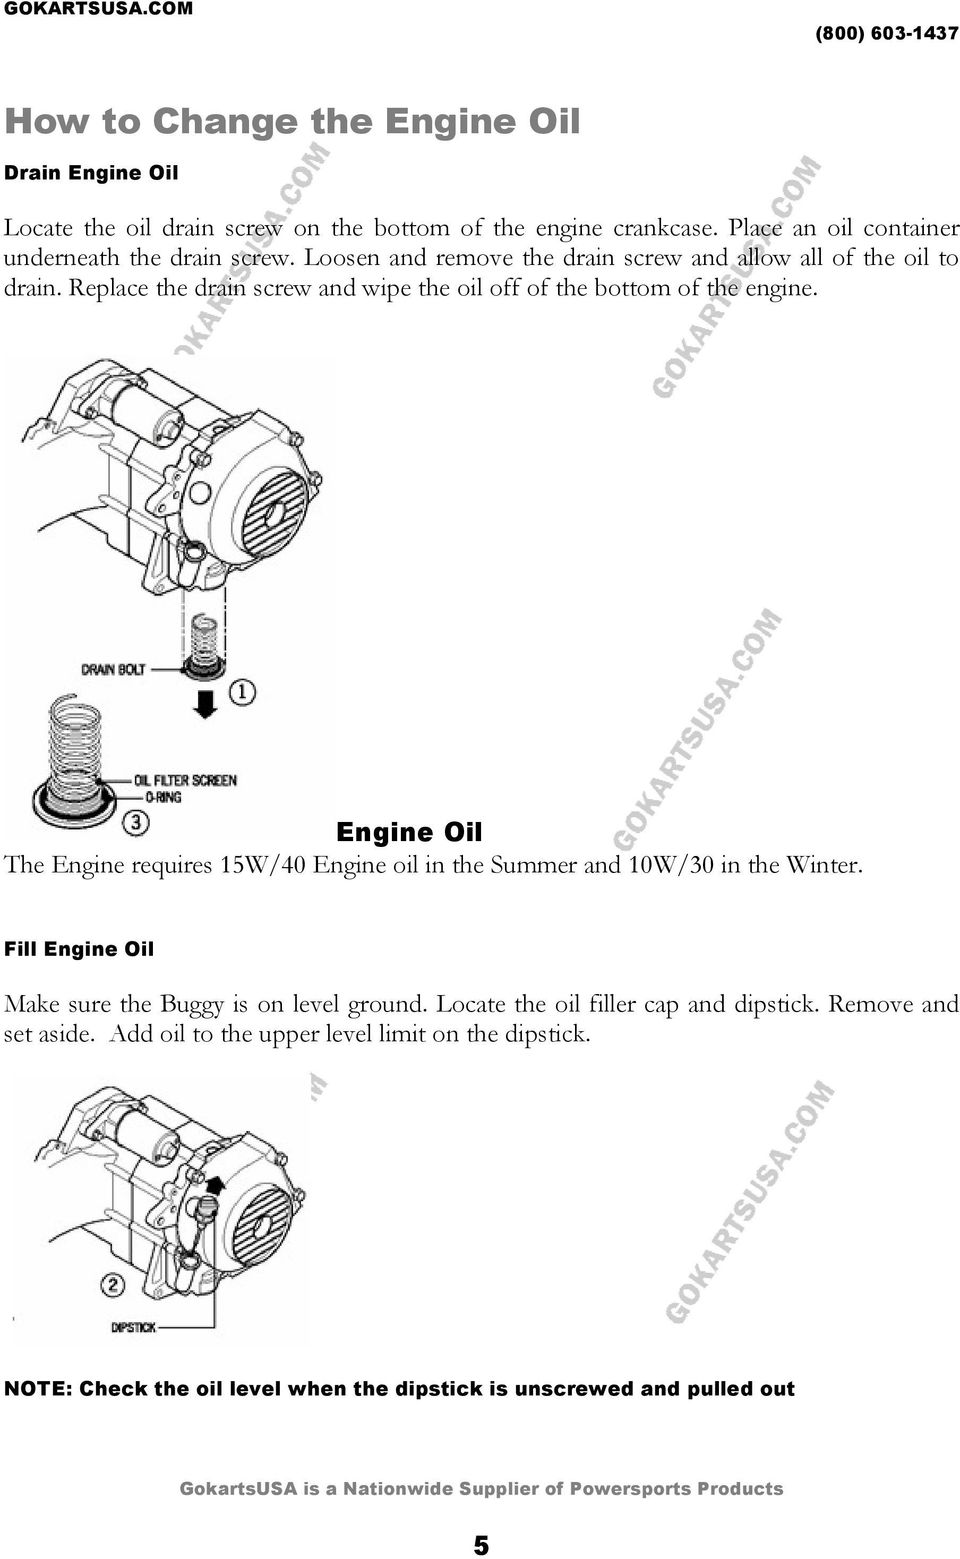 Lubrication Guide Volume Gokartsusa Gy6 150 Cn250 Engine Door Closure Wiring Diagram 279c Cat Replace The Drain Screw And Wipe Oil Off Of Bottom